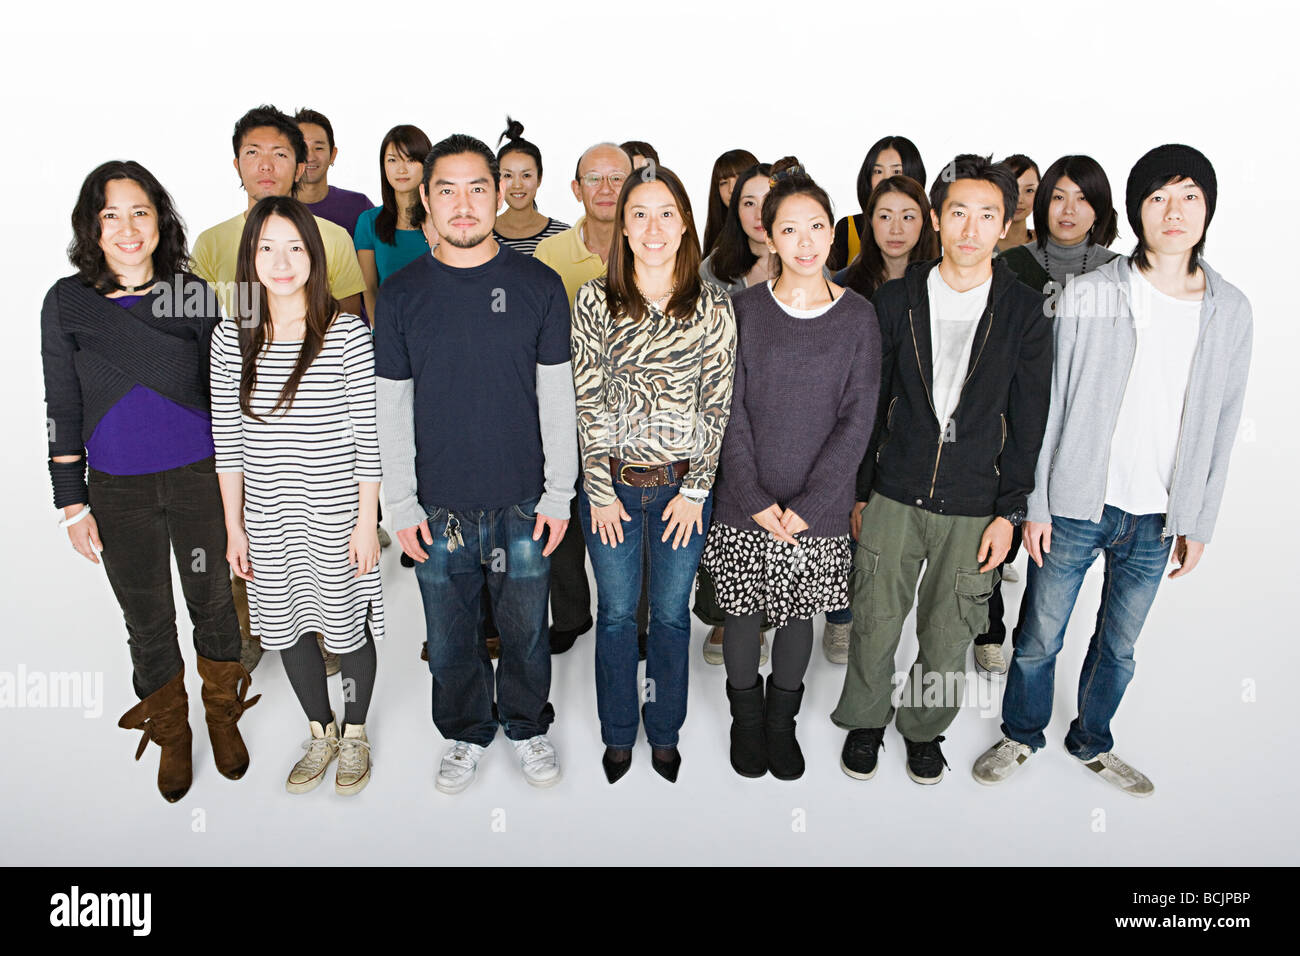 Large group of people - Stock Image